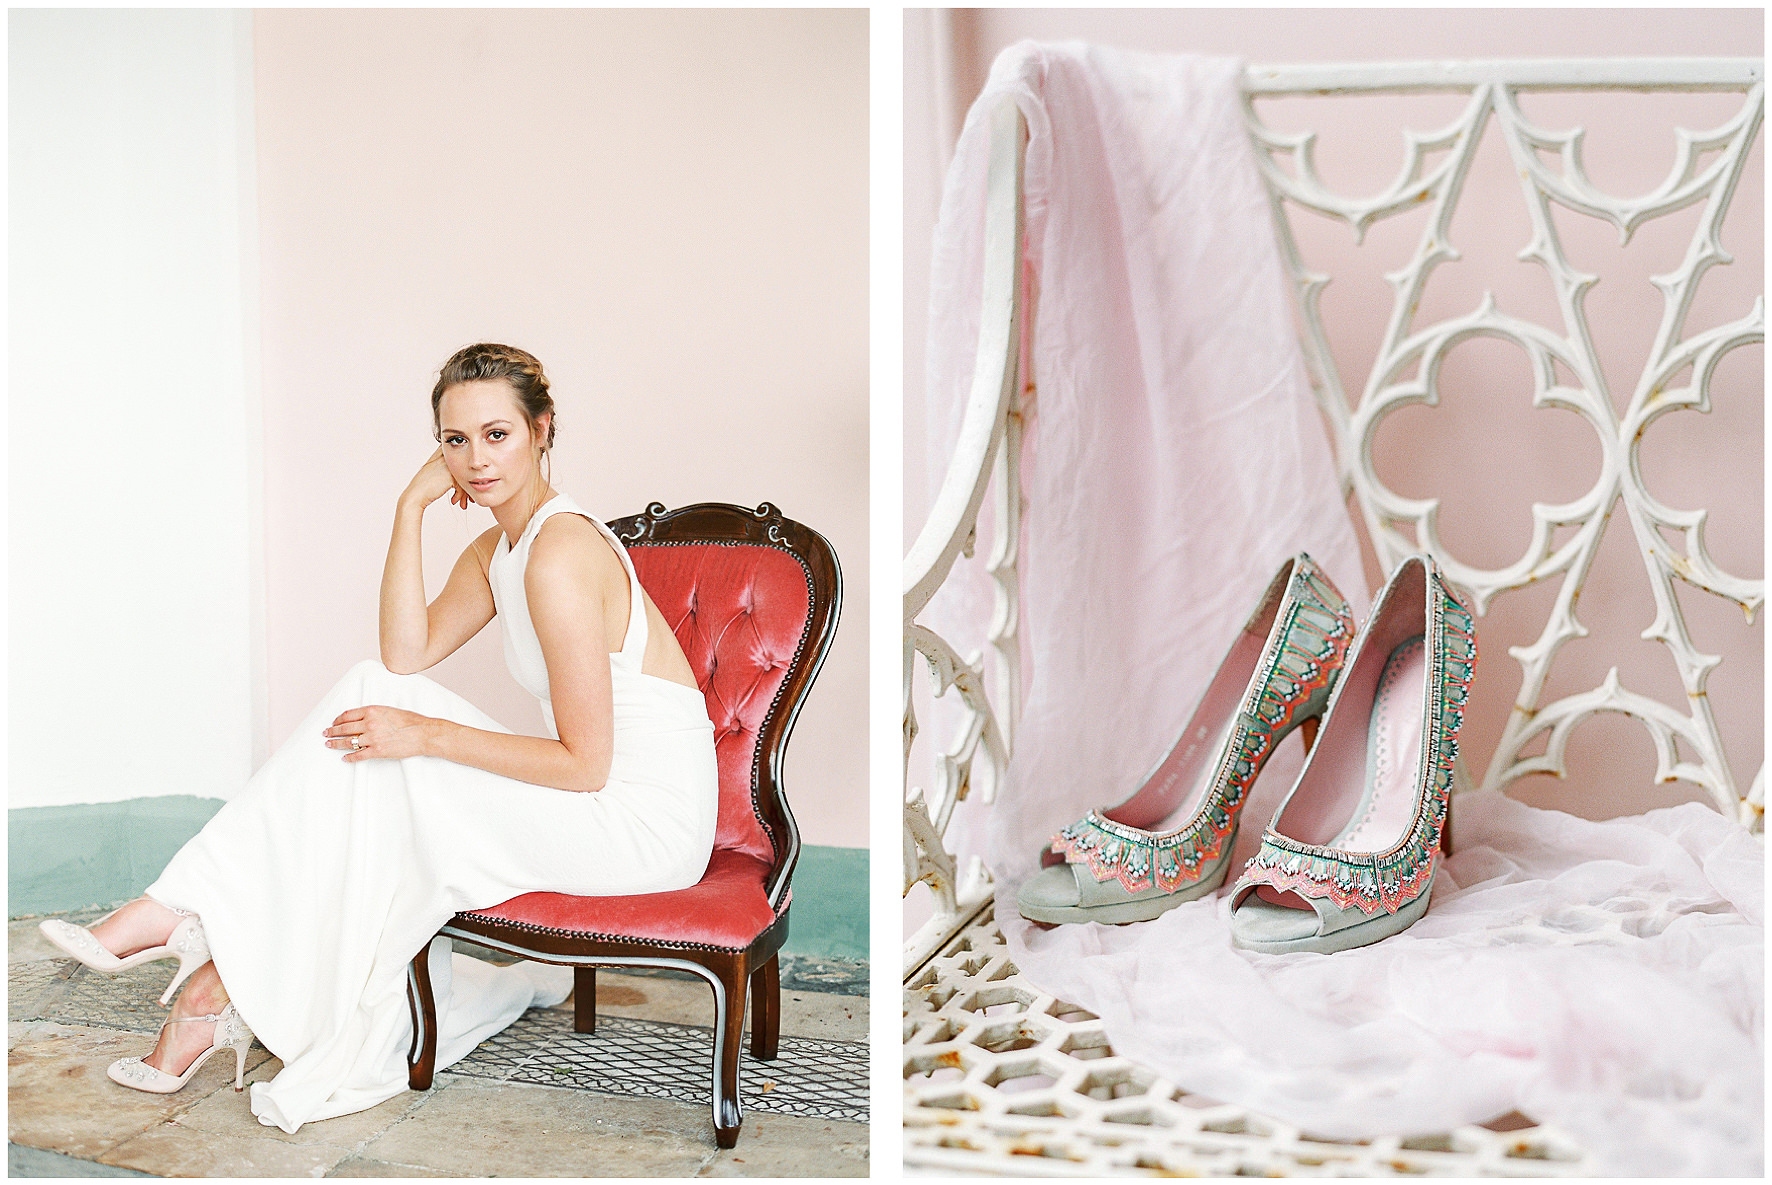 Emmy London, Emmy, Bridal shoes, boutique, wedding shoes, flagship store, Fulham Road, Chelsea Collection, Sezincote, Style Me Pretty. Lucy Davenport Photography